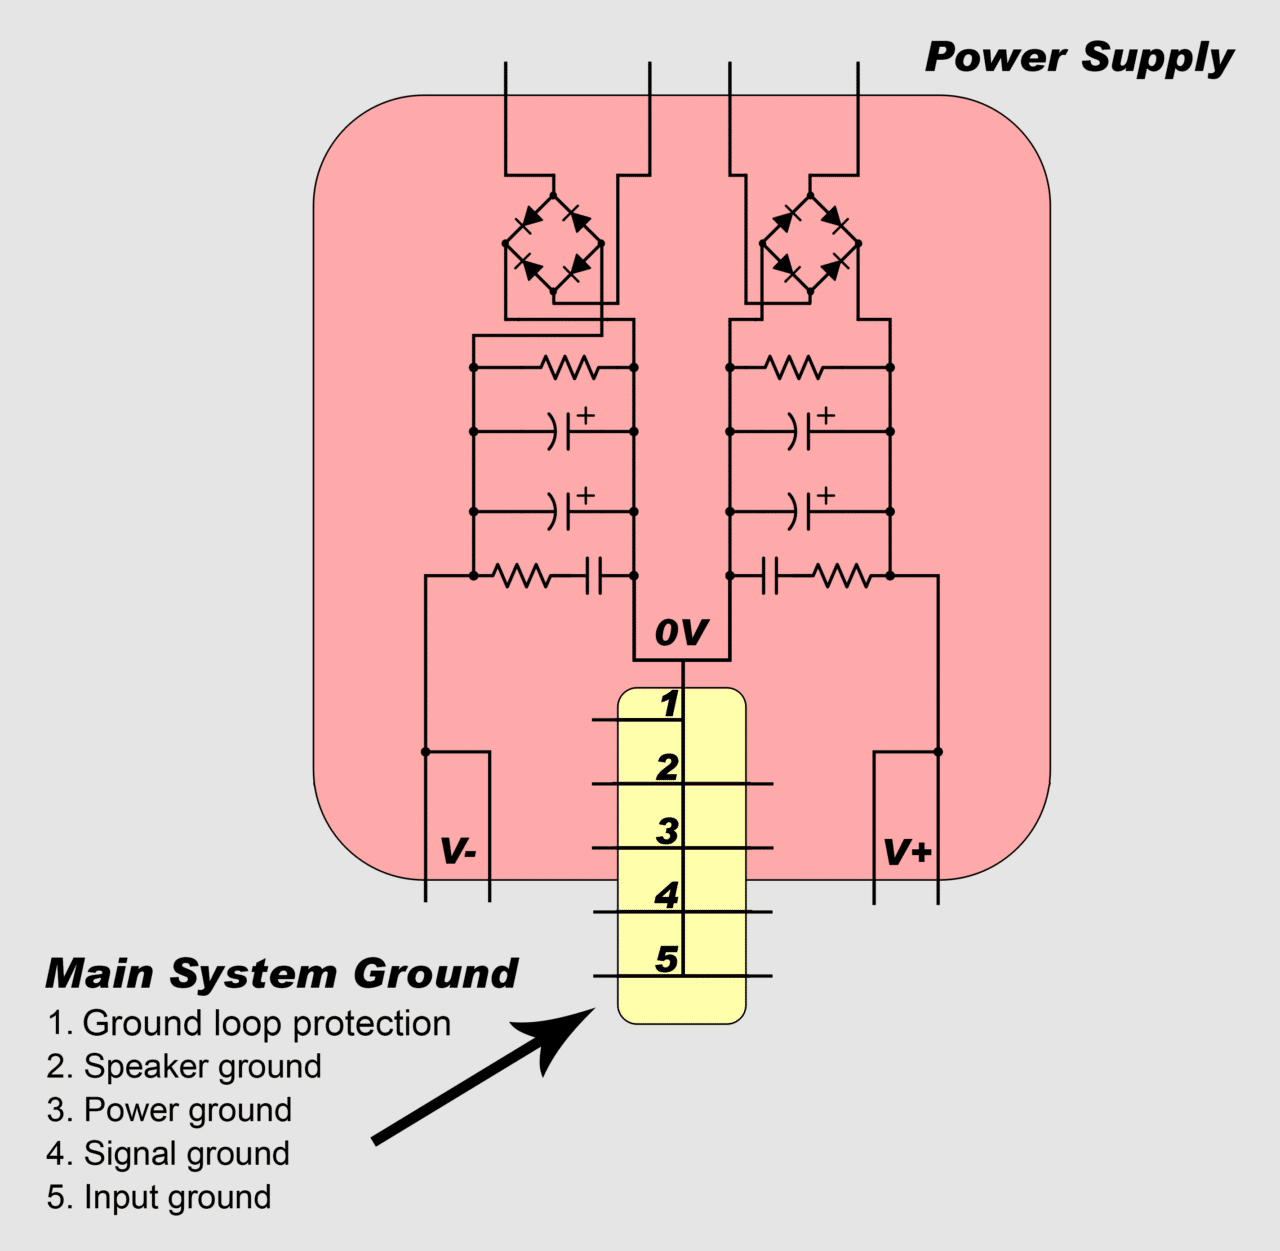 A Complete Guide To Design And Build Hi Fi Lm3886 Amplifier Circuit Schematic Symbols Lessons In Electric Circuits Volume V Main System Ground So That Higher Current Grounds Are Closer The Reservoir Capacitors Diagram Below Shows How Order Connections